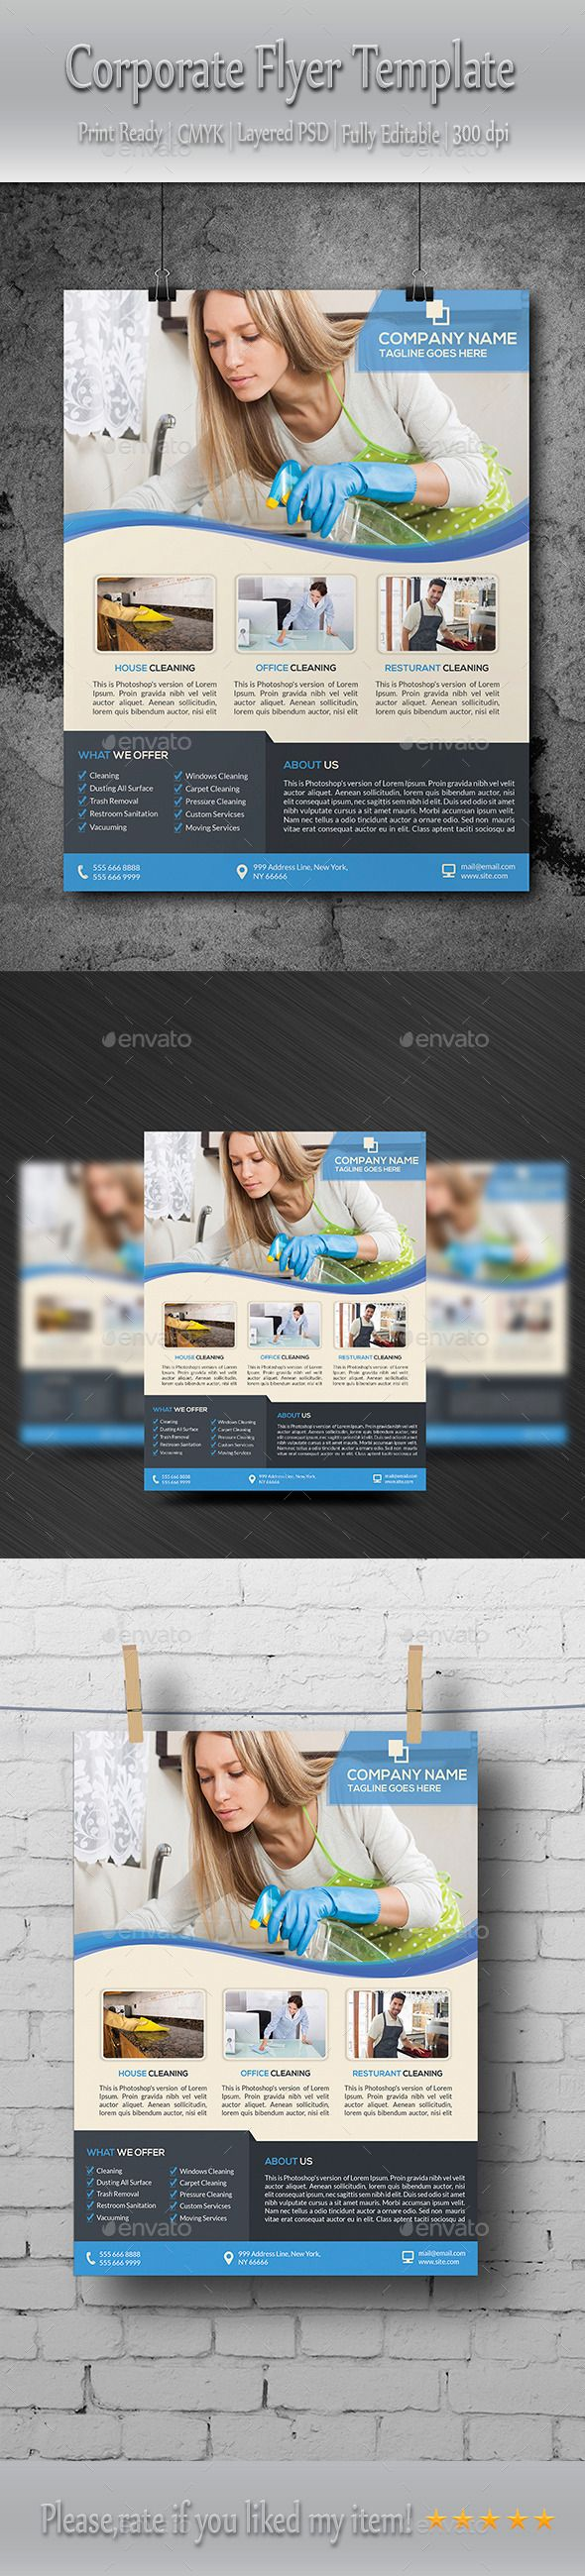 best images about cleaning logo design logo cleaning services flyer template